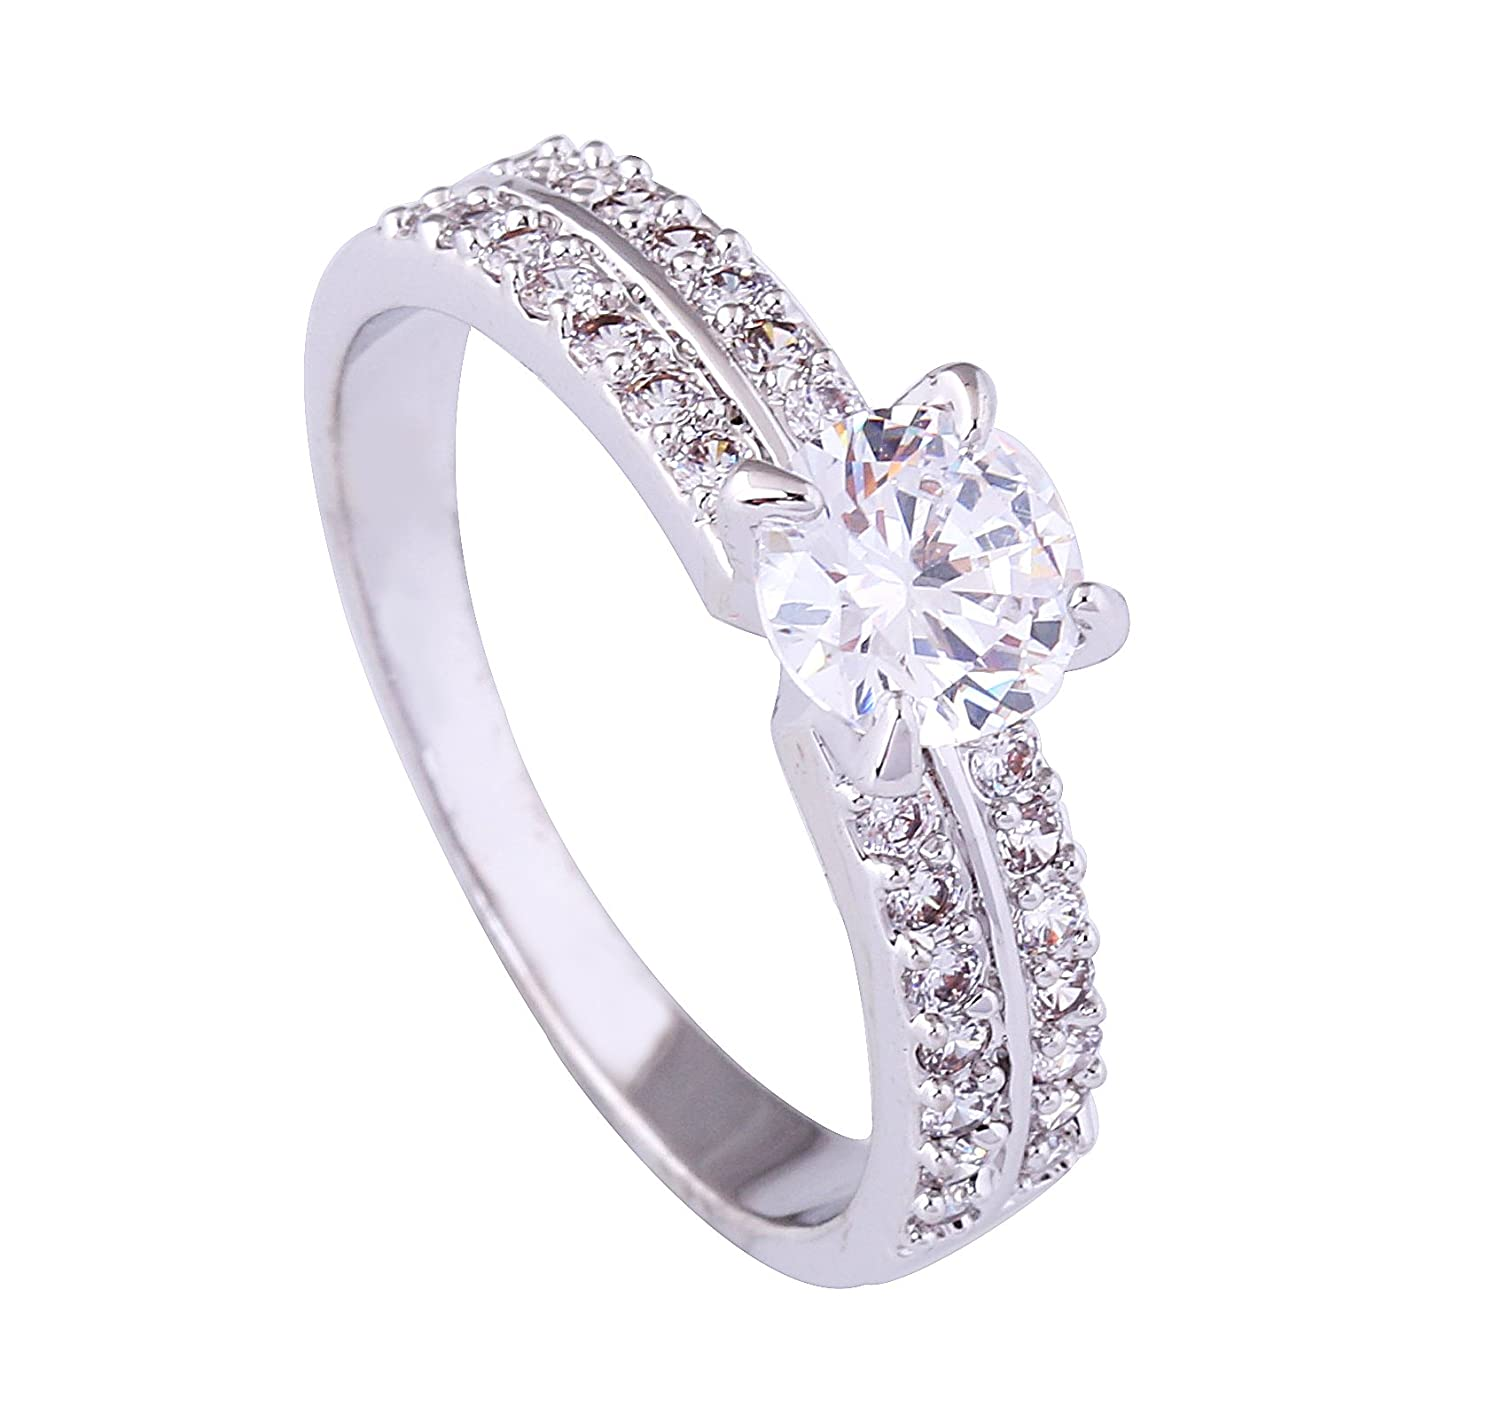 Acefeel White Gold Plated Bilayer Micro Paving Zircon Inlaid Four-claw Wedding Promise Ring R191